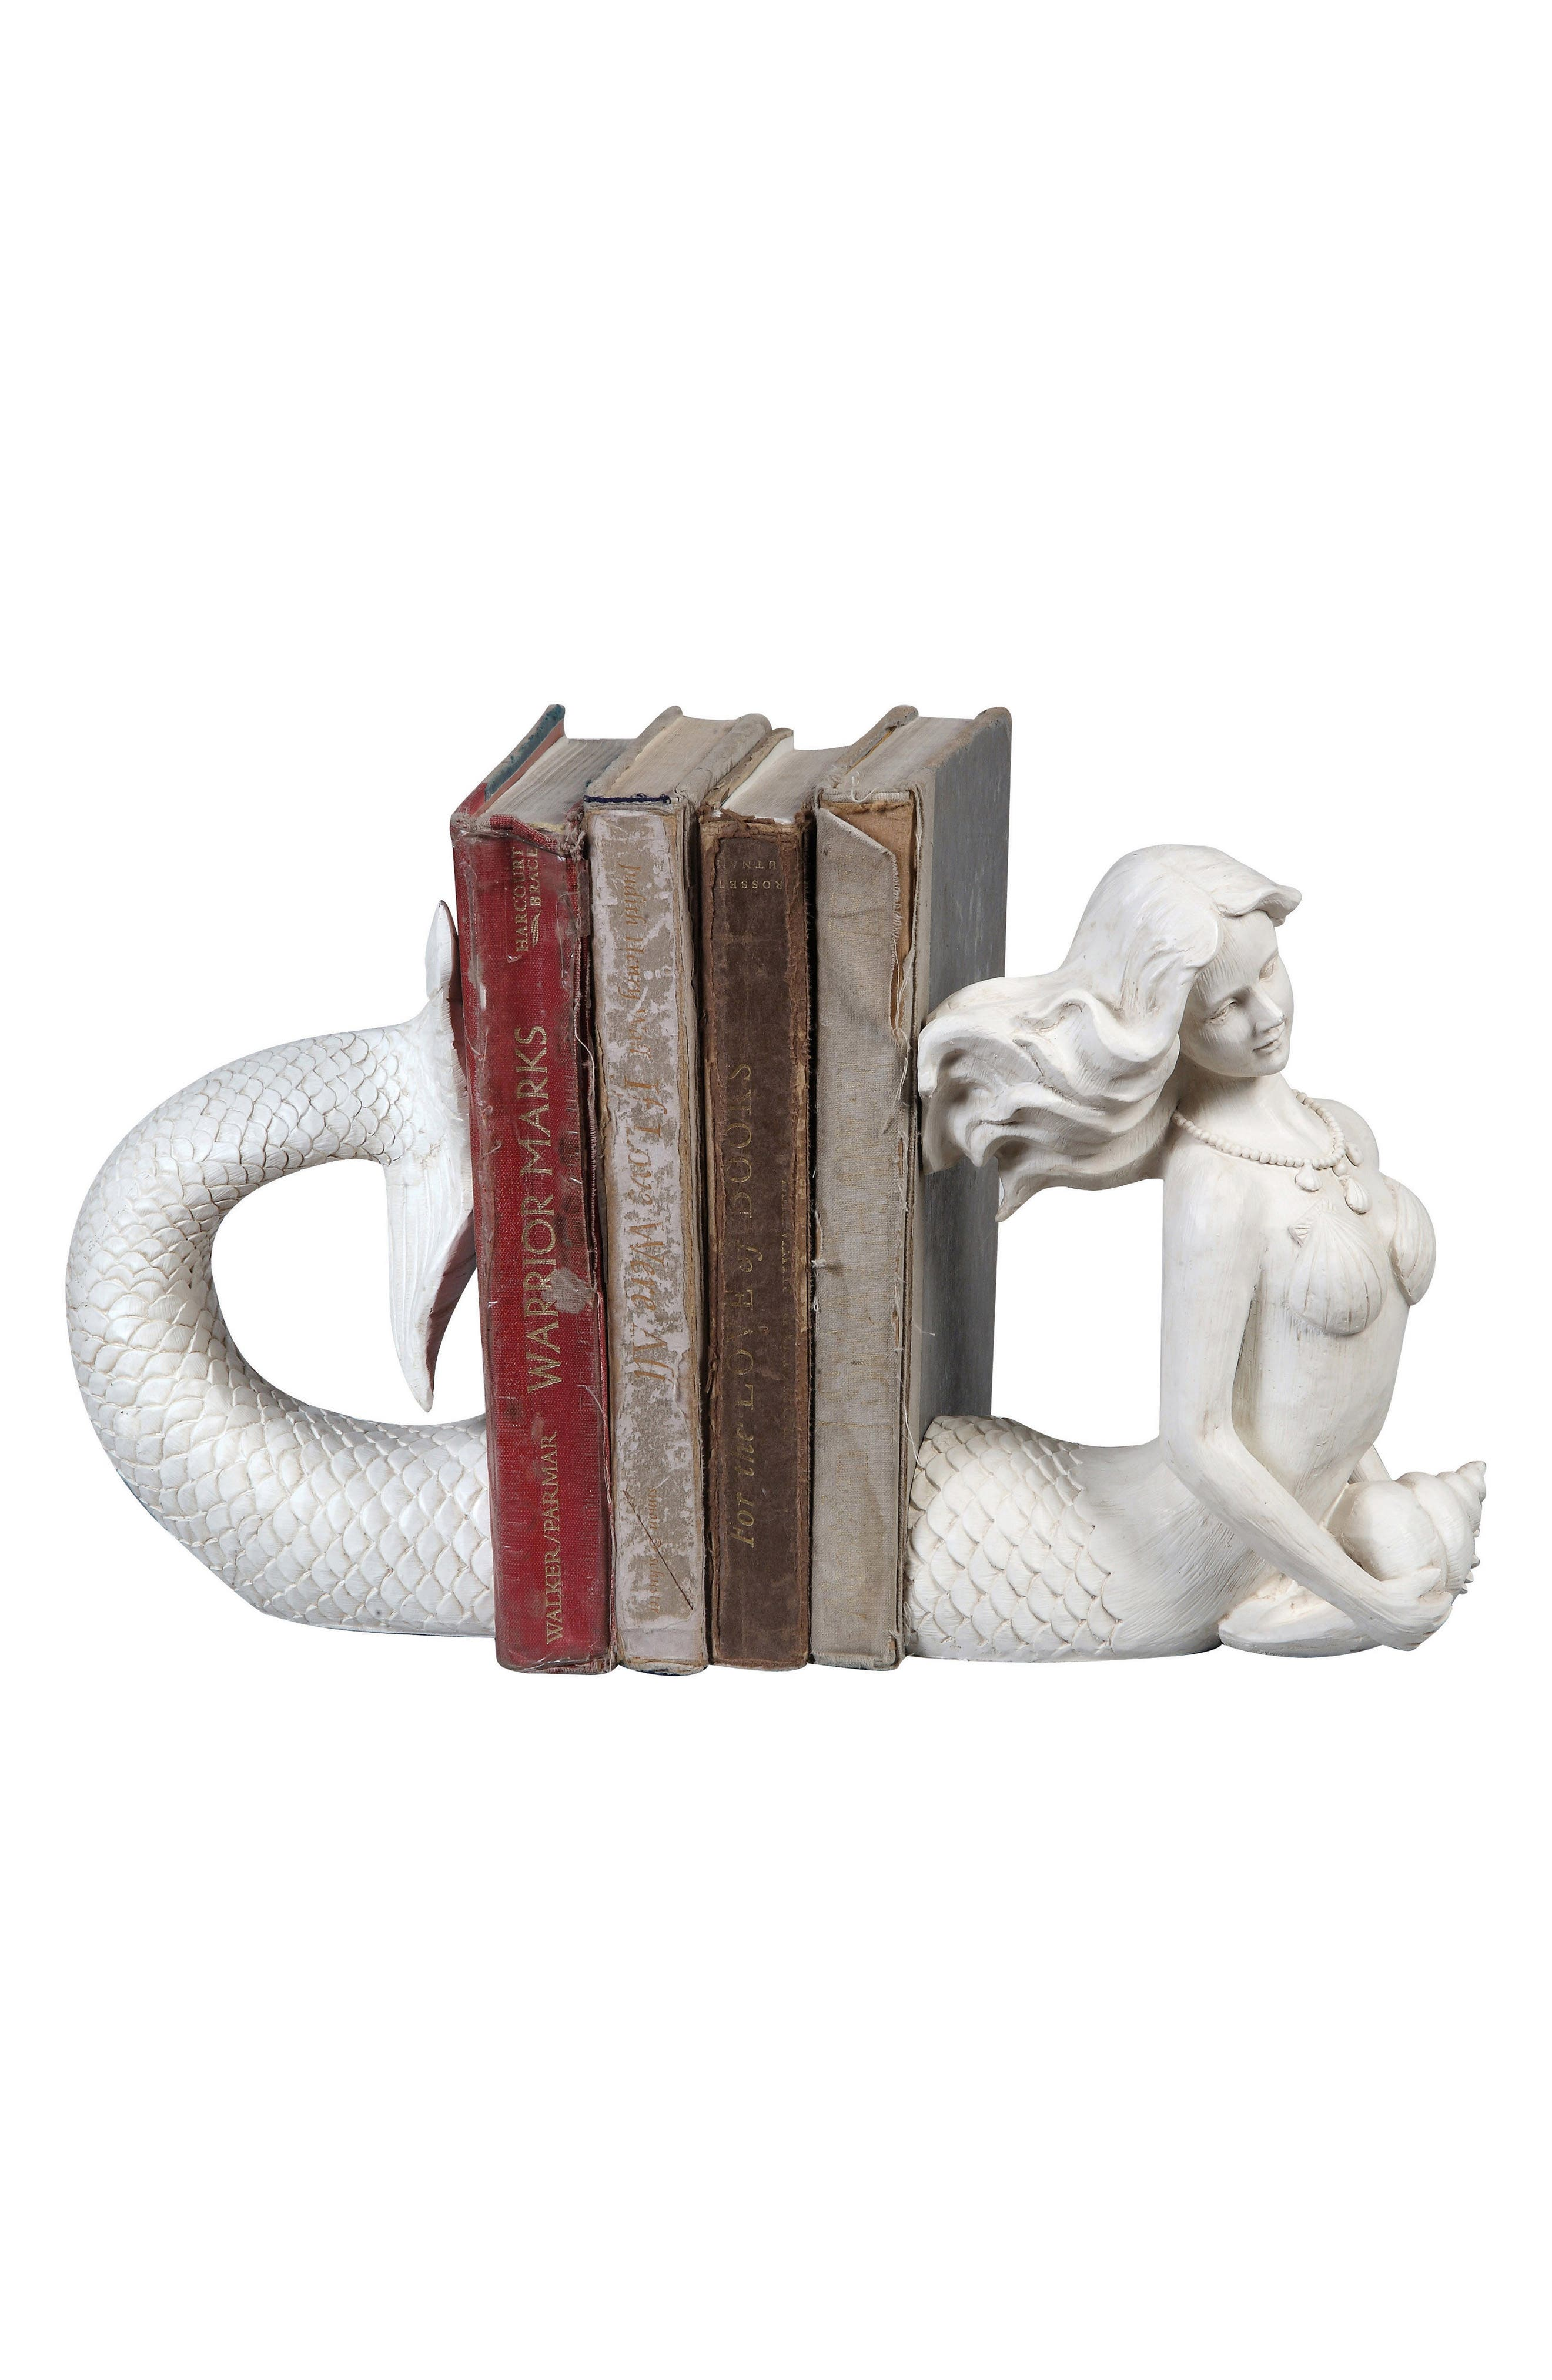 Mermaid Bookends,                             Main thumbnail 1, color,                             White